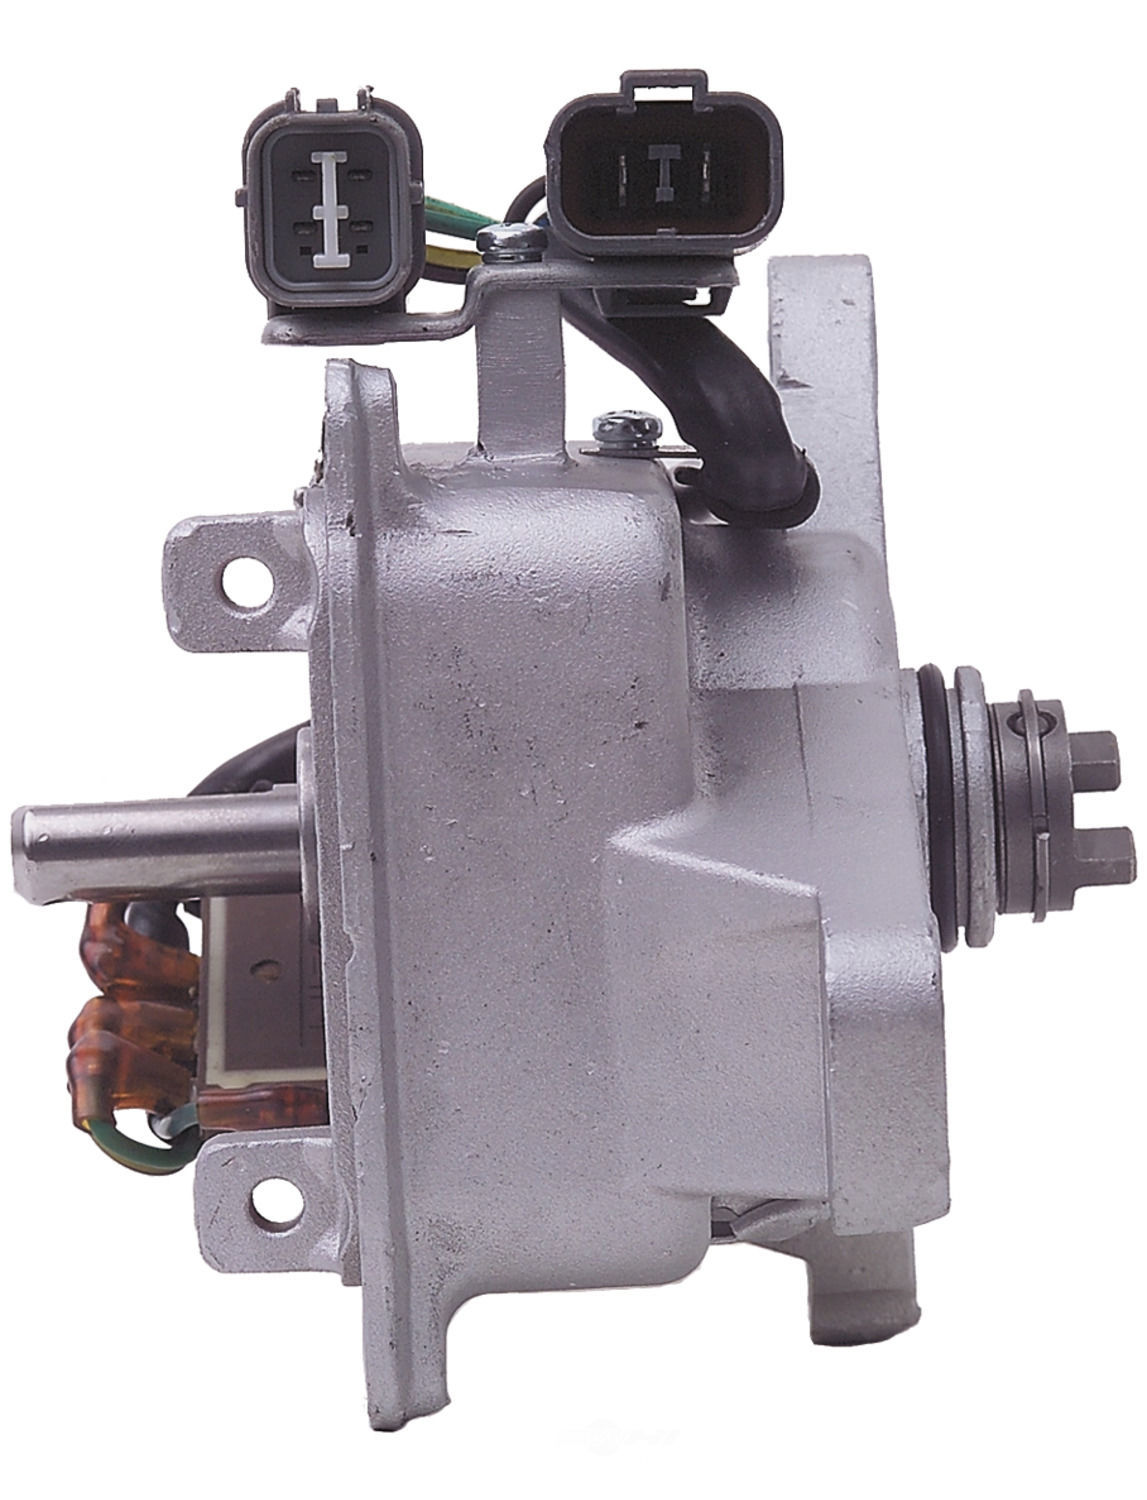 CARDONE/A-1 CARDONE - Remanufactured Distributor(Electronic) - A1C 31-17400